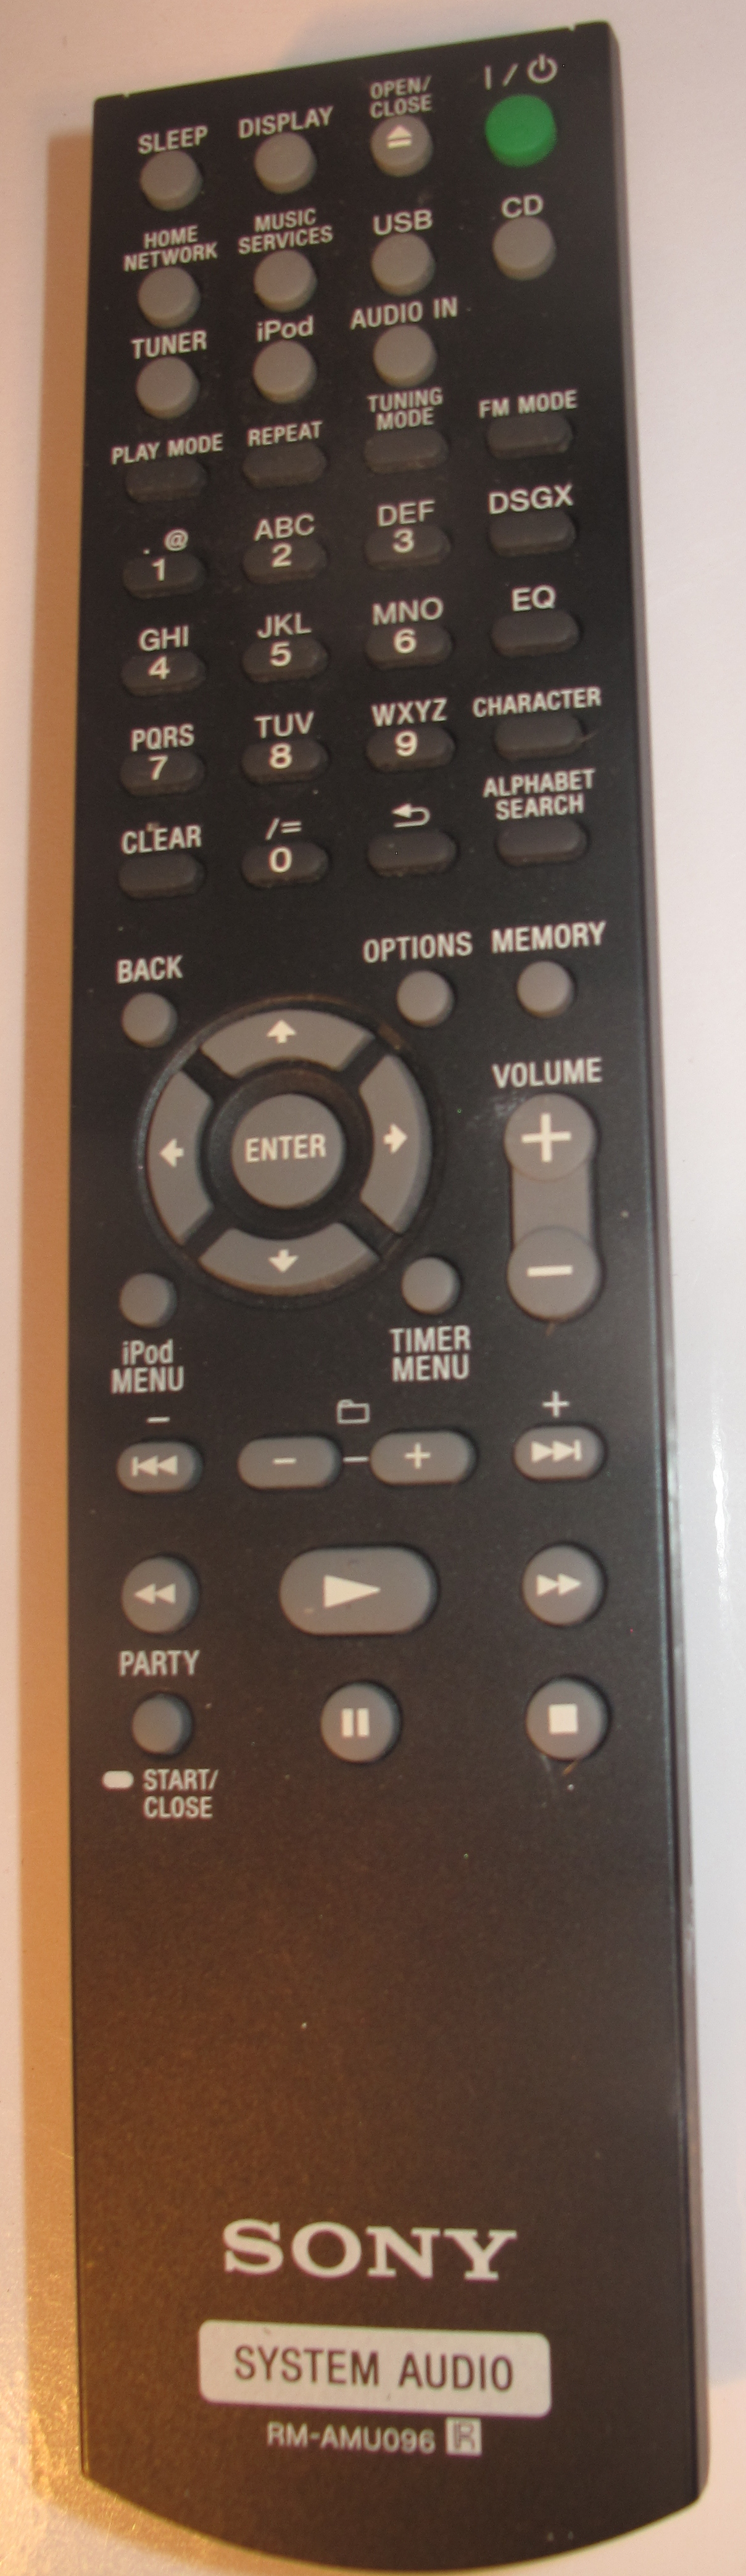 Sony CMT-MX750Ni Internet-enabled music system remote control